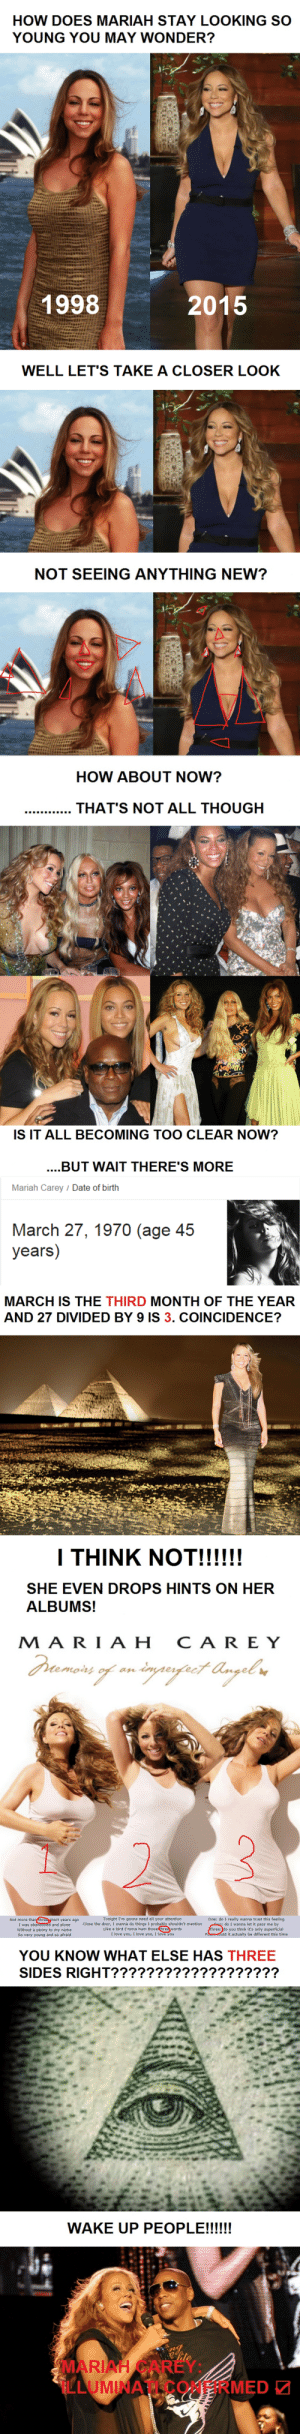 shaderiahcarey:  Mariah Carey: Illuminati Confirmed   ☑     omg : HOW DOES MARIAH STAY LOOKING SO  YOUNG YOU MAY WONDER?  2015  1998  WELL LET'S TAKE A CLOSER LOOK   NOT SEEING ANYTHING NEW?  HOW ABOUT NOW?  THAT'S NOT ALL THOUGH  ....   IS IT ALL BECOMING T0O CLEAR NOW?  .BUT WAIT THERE'S MORE  Mariah Carey / Date of birth  March 27, 1970 (age 45  years)  MARCH IS THE THIRD MONTH OF THE YEAR  AND 27 DIVIDED BY 9 IS 3. COINCIDENCE?   I THINK NOT!!!!!!  SHE EVEN DROPS HINTS ON HER  ALBUMS!  M A RI A H  CAREY  Dramors of an inpufrct Angel u  Not more than threeshort years ago  I was abanaoned and alone  Tonight I'm gonna need all your attention  Close the door, I wanna do things I probably shouldn't mention  Like a bird I'mma hum those three words  I love you, I love you, I love you  One: do I really wanna trust this feeling  Two: do I wanna let it pass me by  Three: do you think it's only superficial  Foucould it actually be different this time  Without a penny to my name  So very young and so afraid   YOU KNOW WHAT ELSE HAS THREE  SIDES RIGHT???????????????????  WAKE UP PEOPLE!!!!!!  SMARIAH CAREY:  LLUMINA OMERMED shaderiahcarey:  Mariah Carey: Illuminati Confirmed   ☑     omg